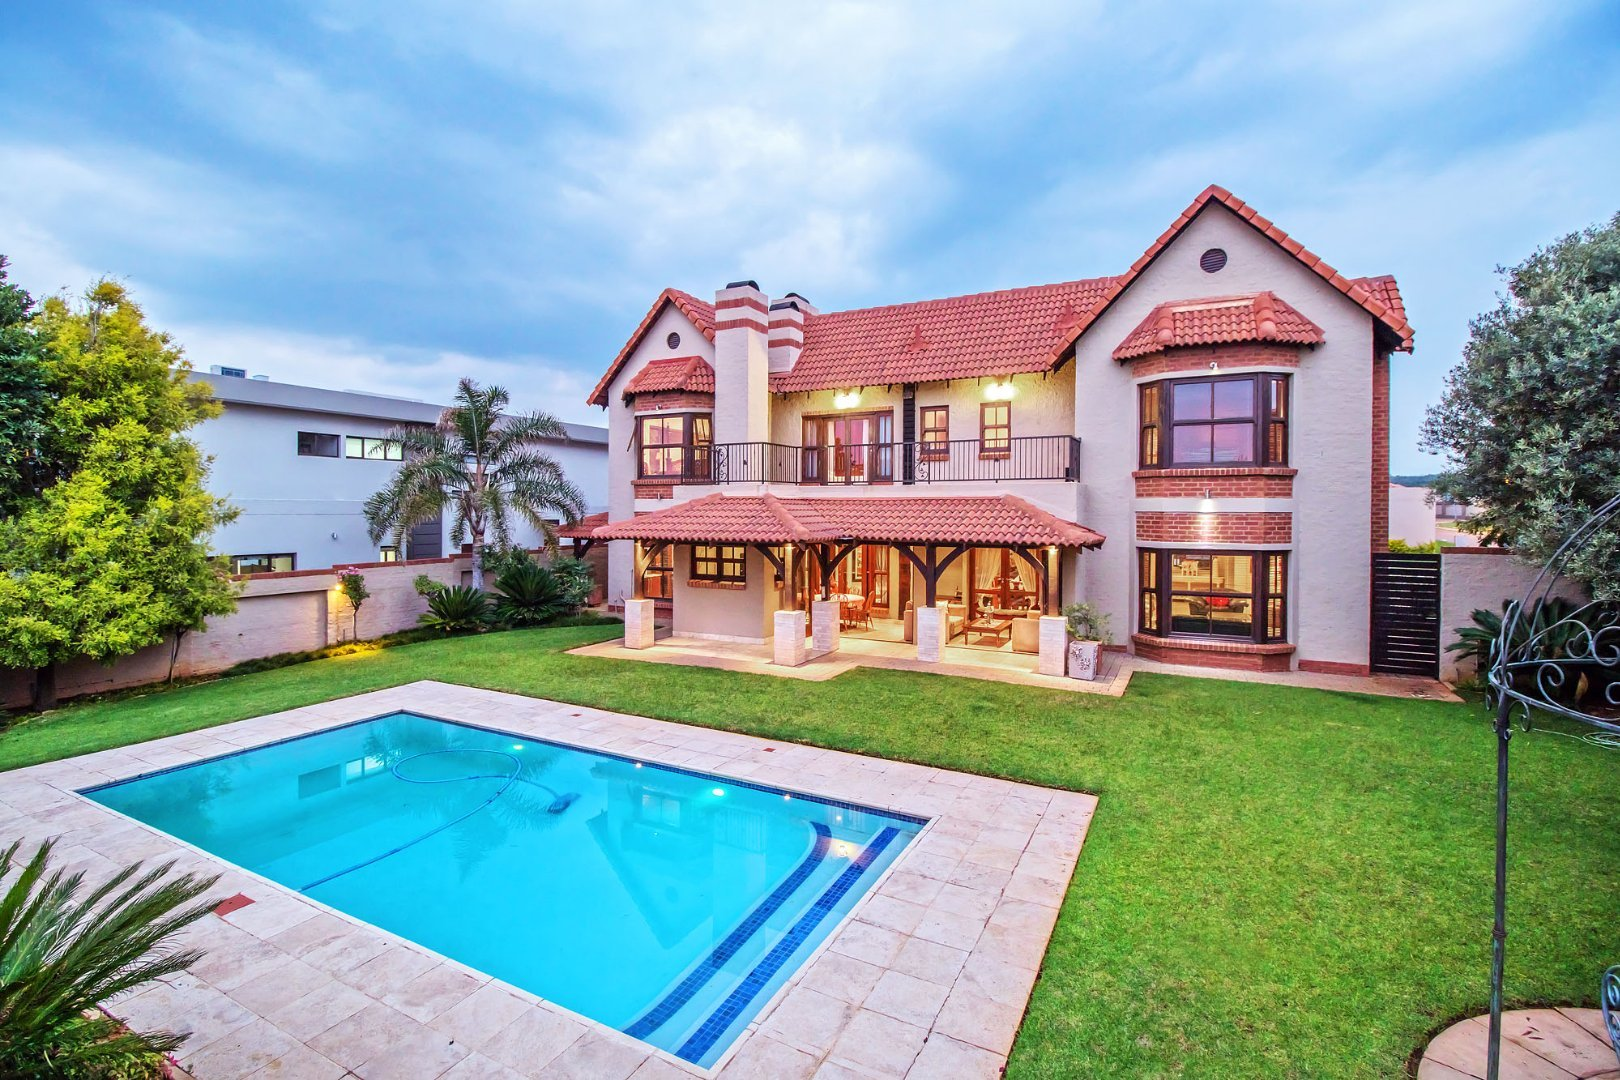 Silverwoods Country Estate property for sale. Ref No: 13677239. Picture no 13